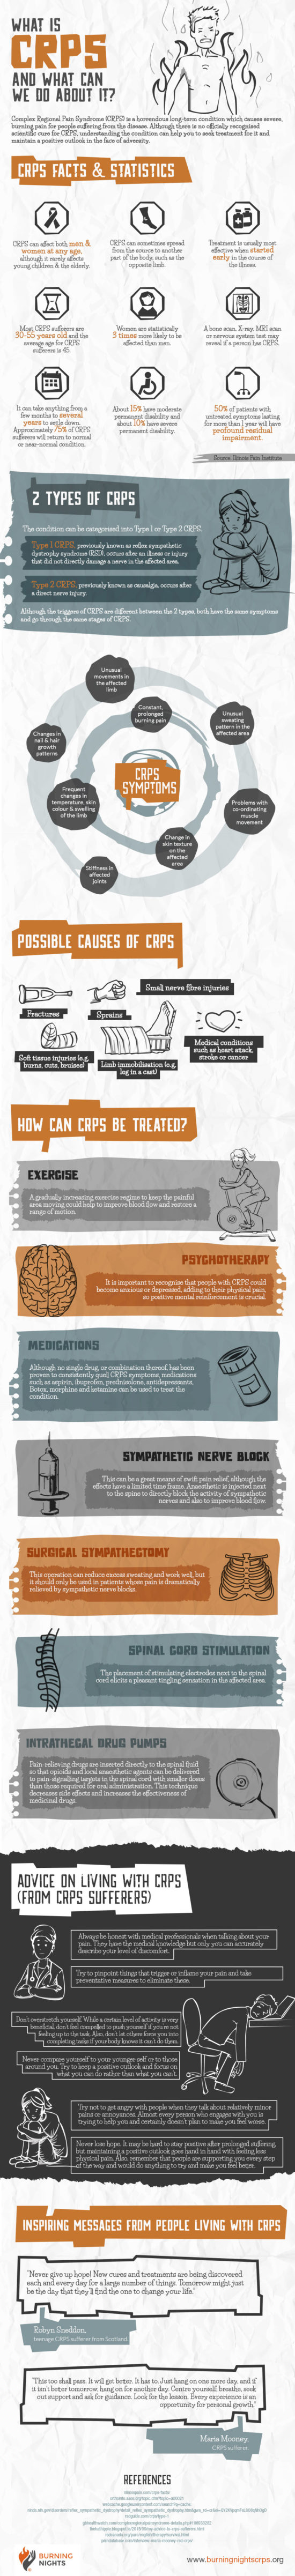 What is CRPS and What Can We Do About It-Infographic